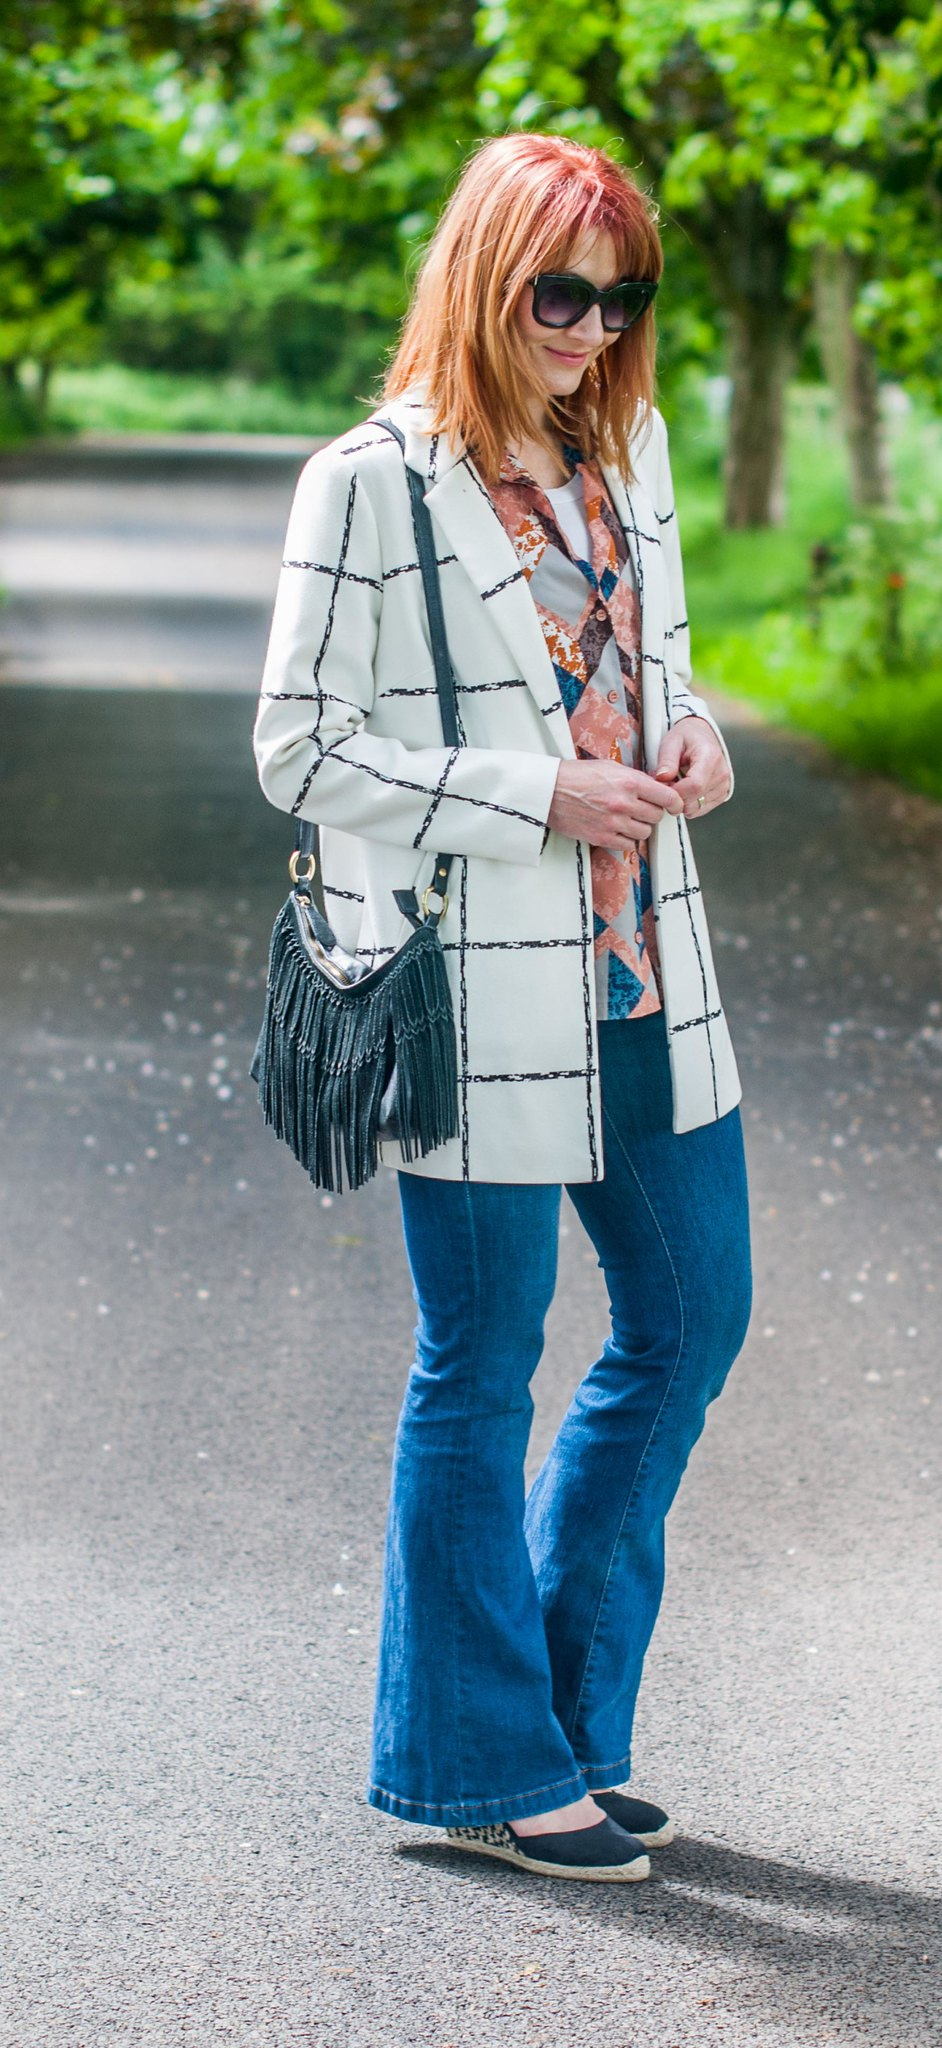 Pattern mixing: Black and white window pane jacket  abstract print pyjama shirt  denim flares  wedge espadrilles | Not Dressed As Lamb, over 40 style